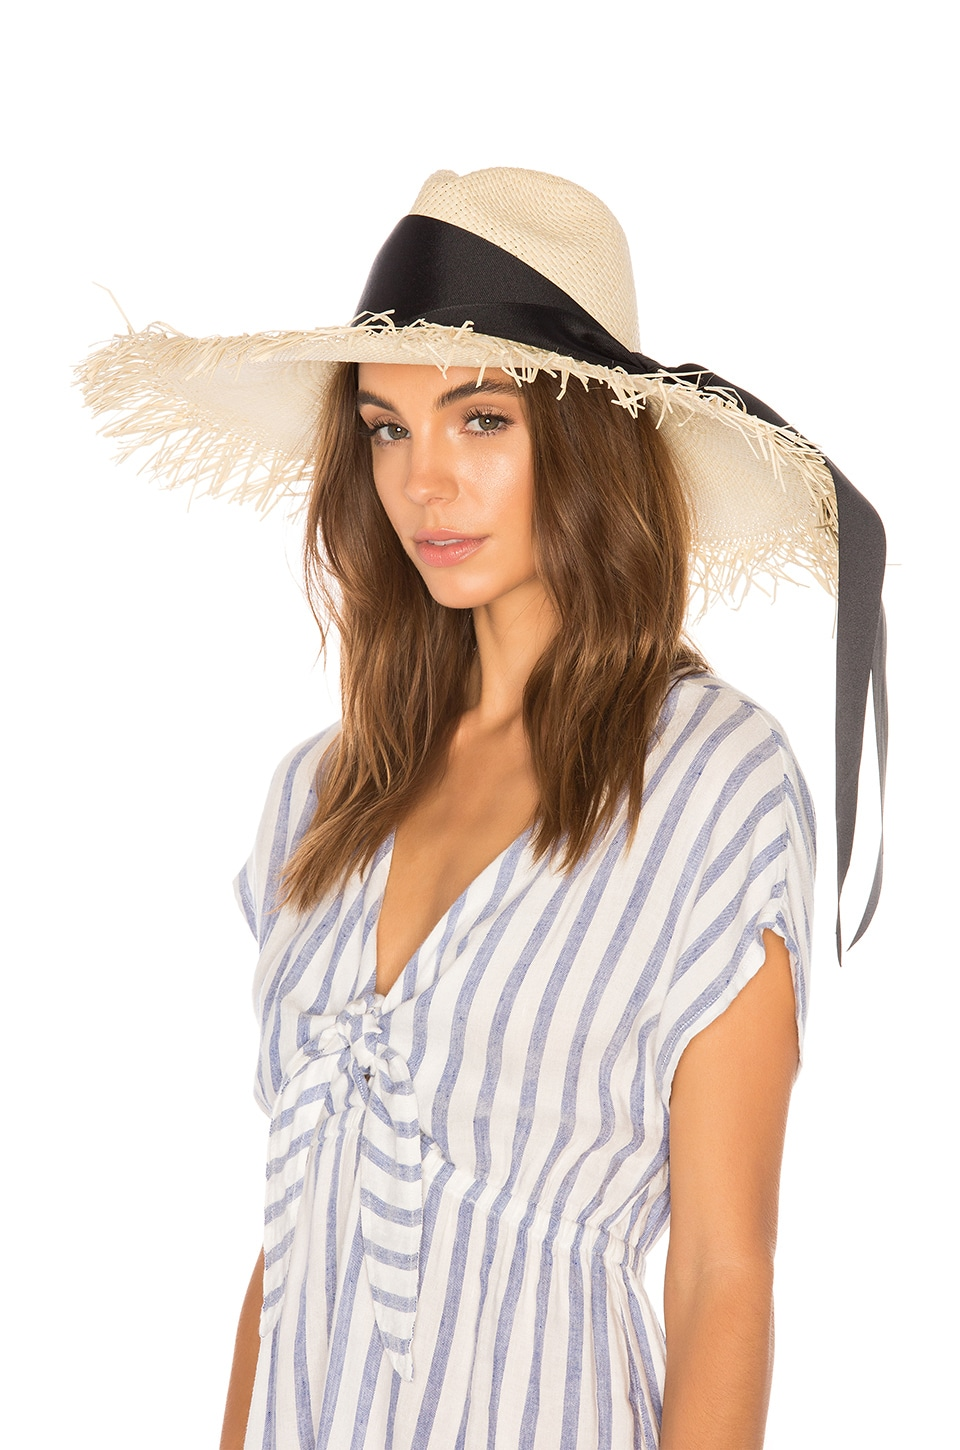 SENSI STUDIO Extra Long Brim Panama Hat in Natural & Black